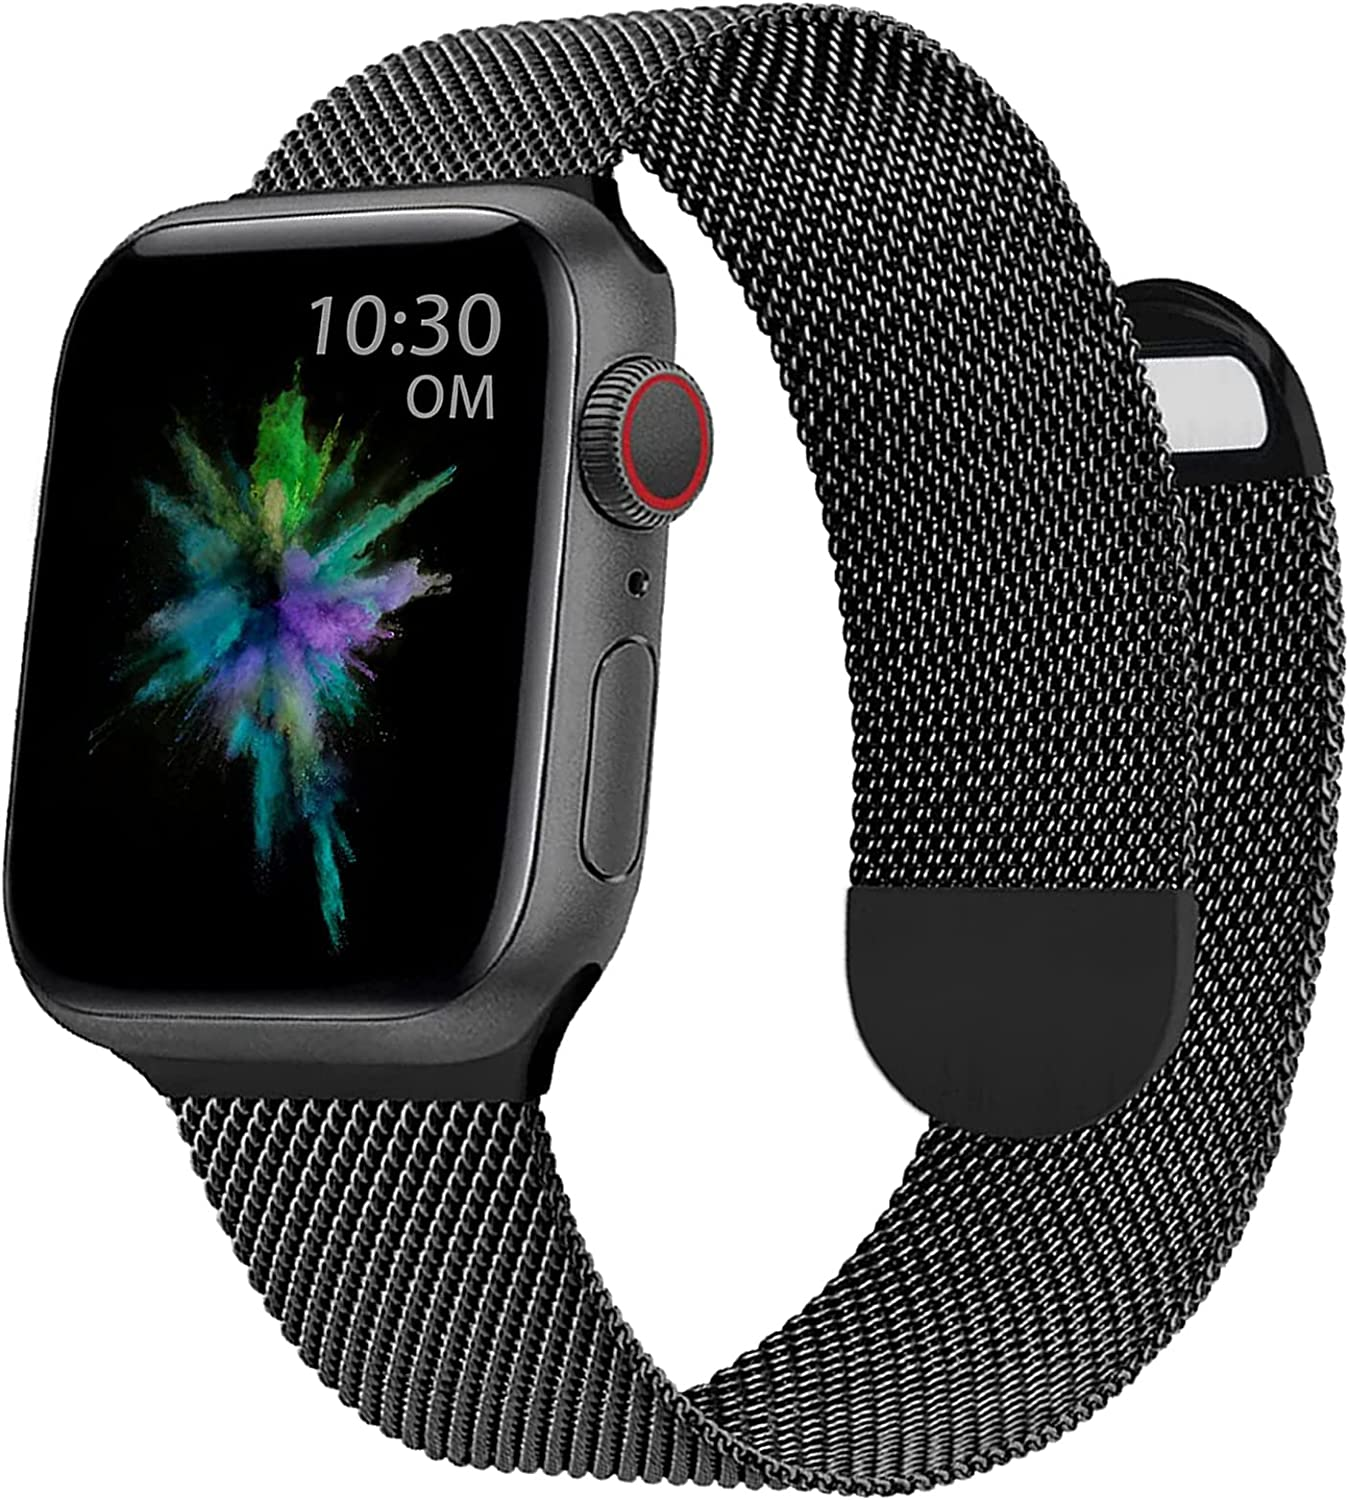 OMECKY Milanese Metal Watch Bands Compatible with Apple Watch 38mm 40mm 42mm 44mm, Magnetic Stainless Steel Mesh Straps Replacement for iWatch Series 6/5/4/3/2/1/SE